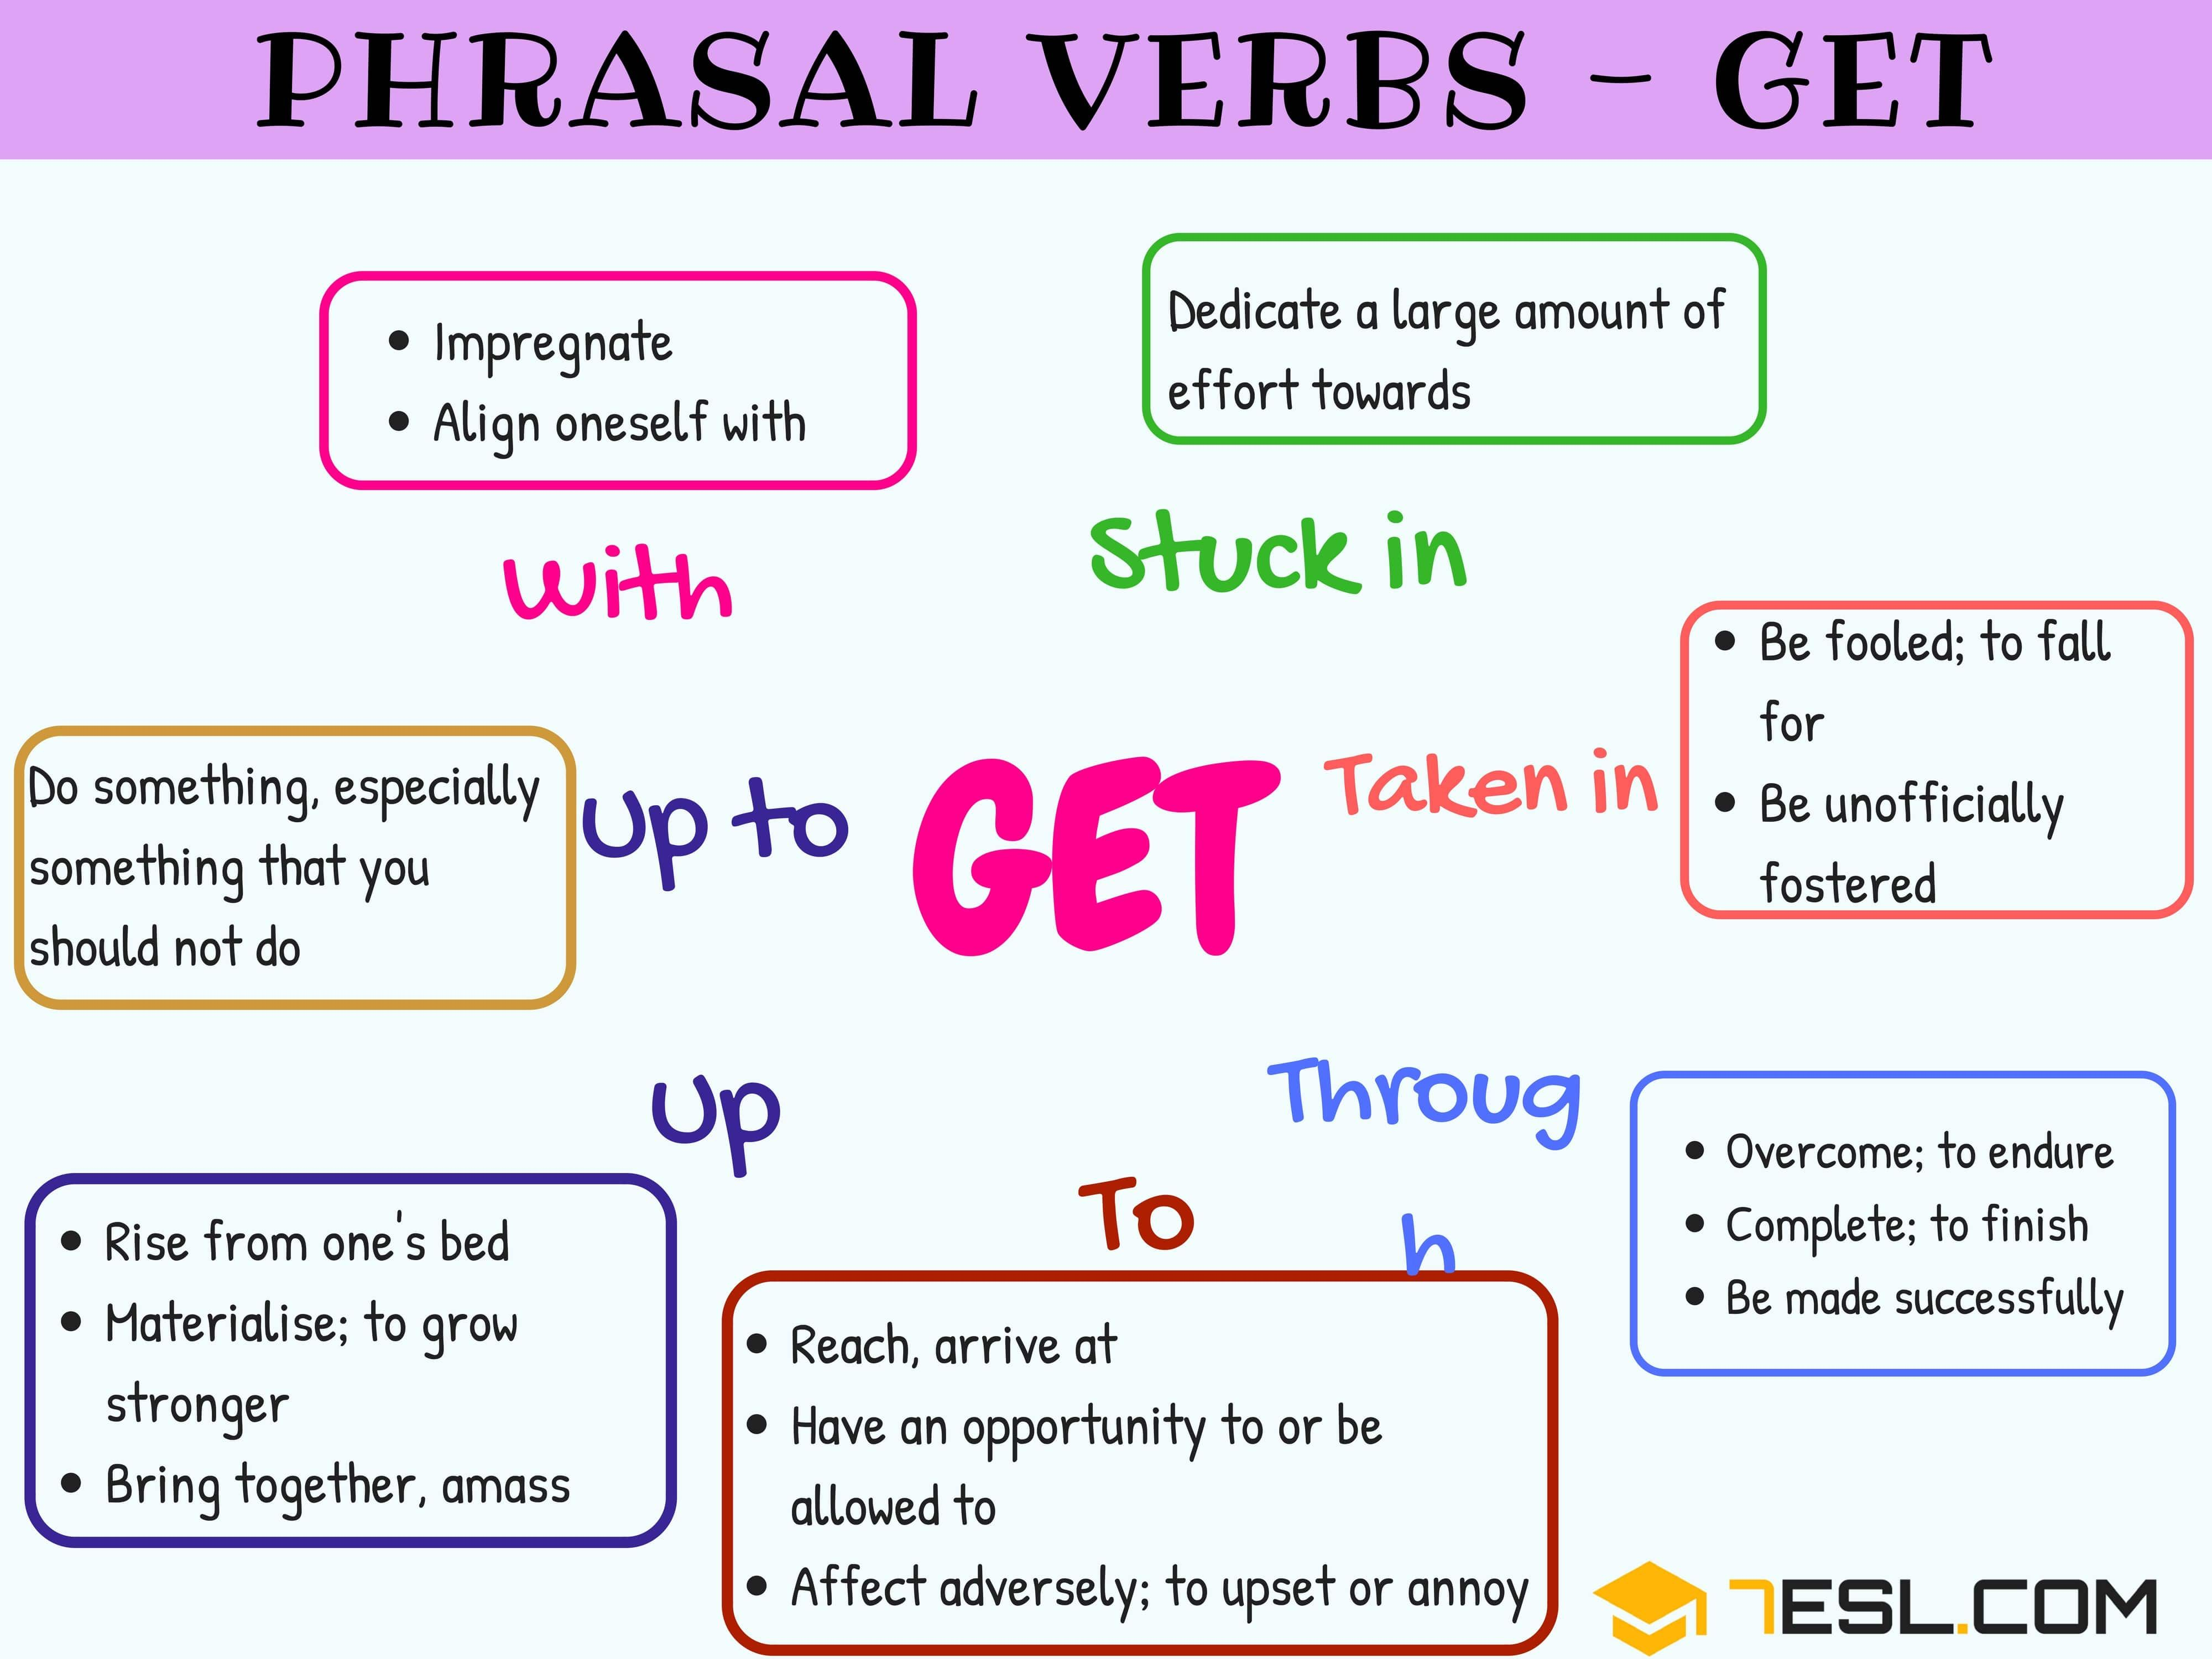 Aula De Inglês Aprender Phrasal Verbs In English Com: Phrasal Verbs With: Get 3/3